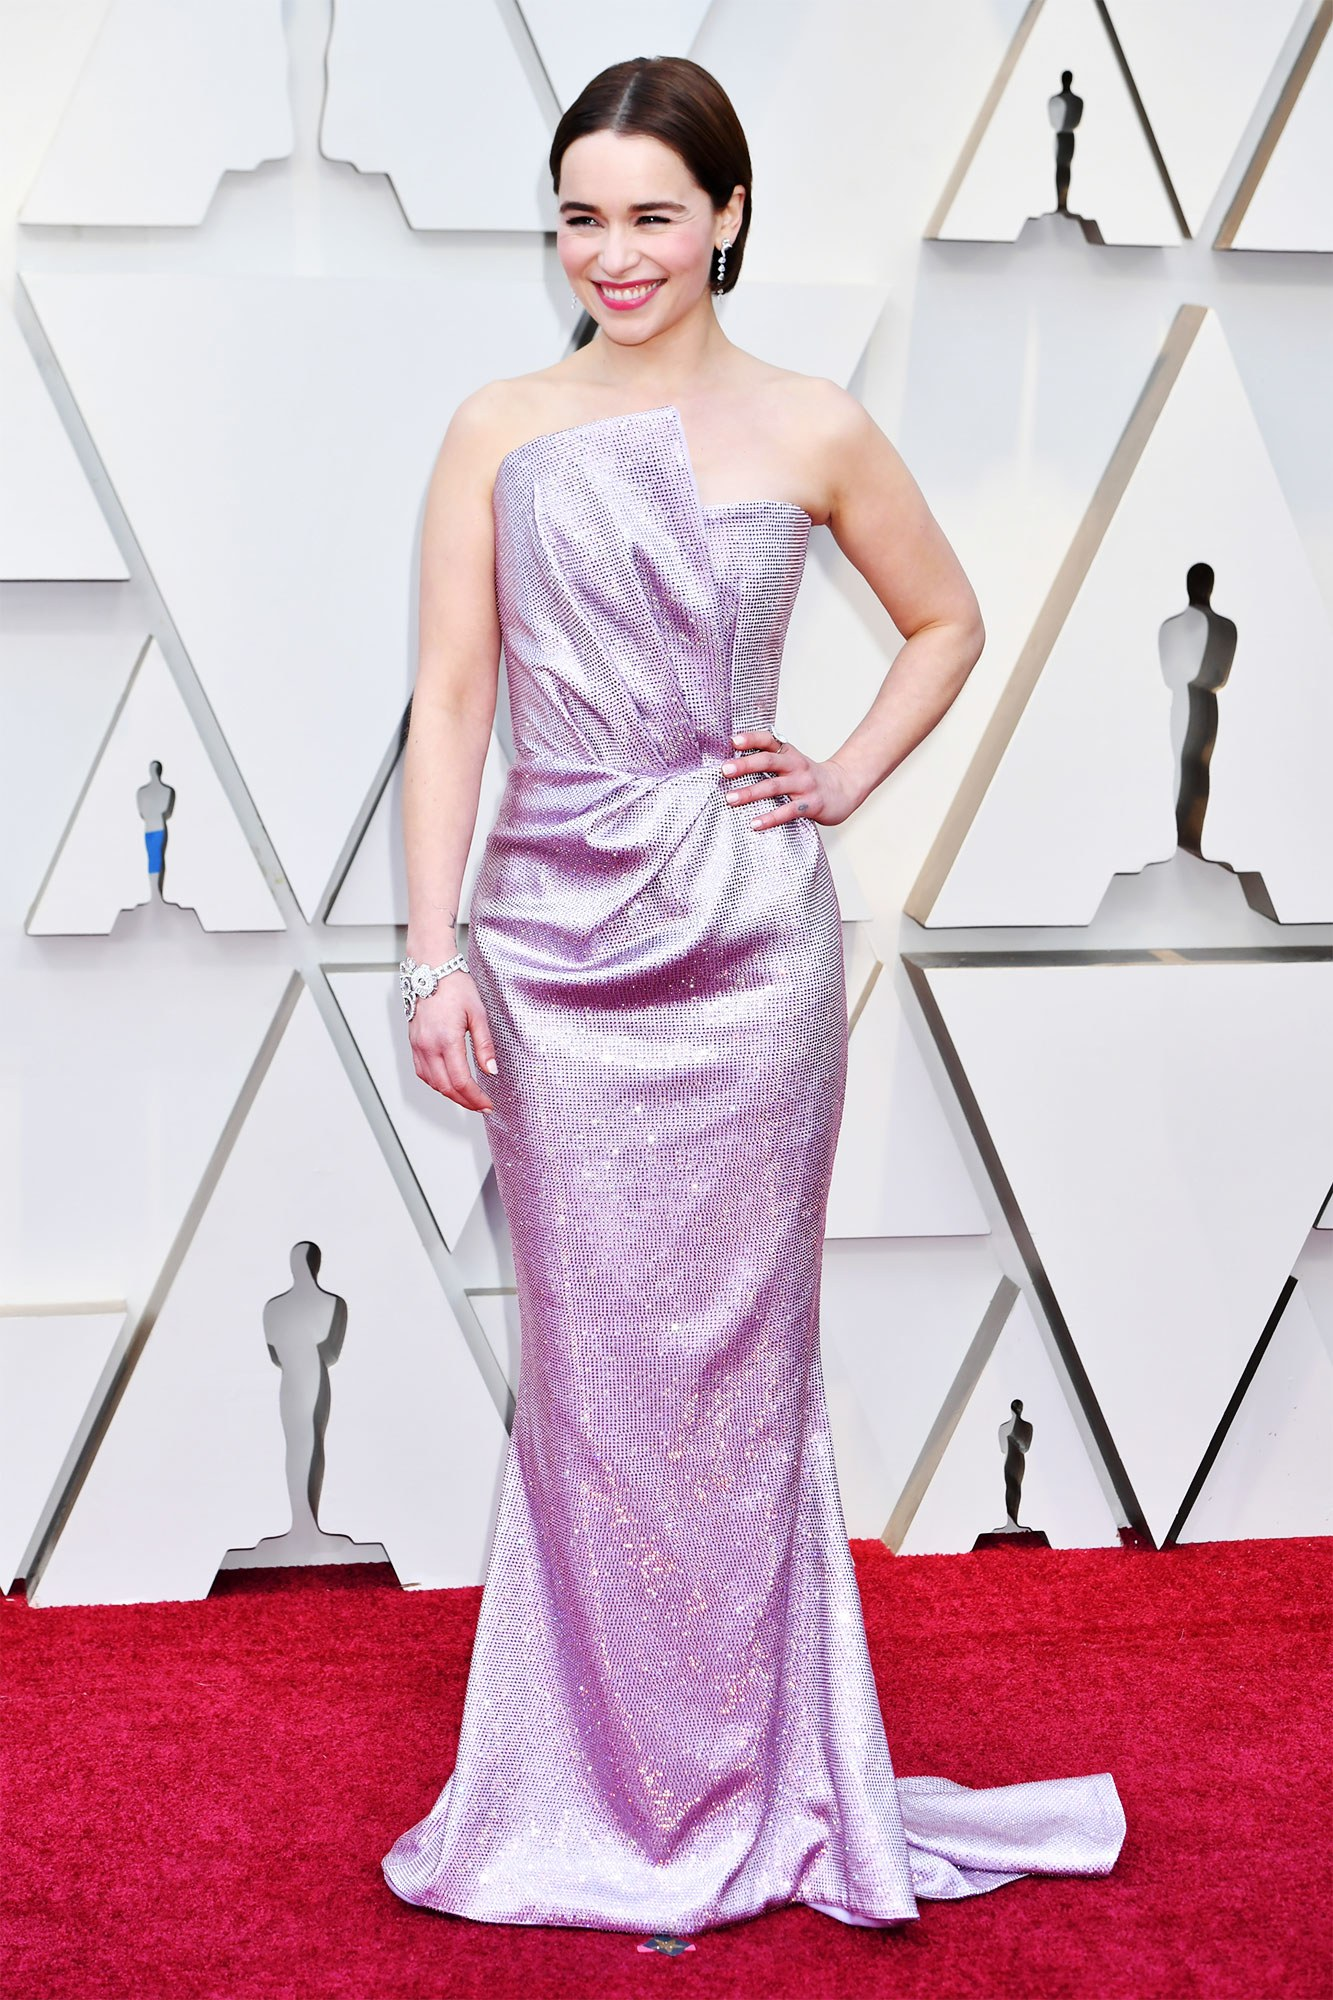 EMILIA CLARKE - BALMAIN: Love everything about this dress; 80s inspo, architectural bodice and the purple/silver effects.